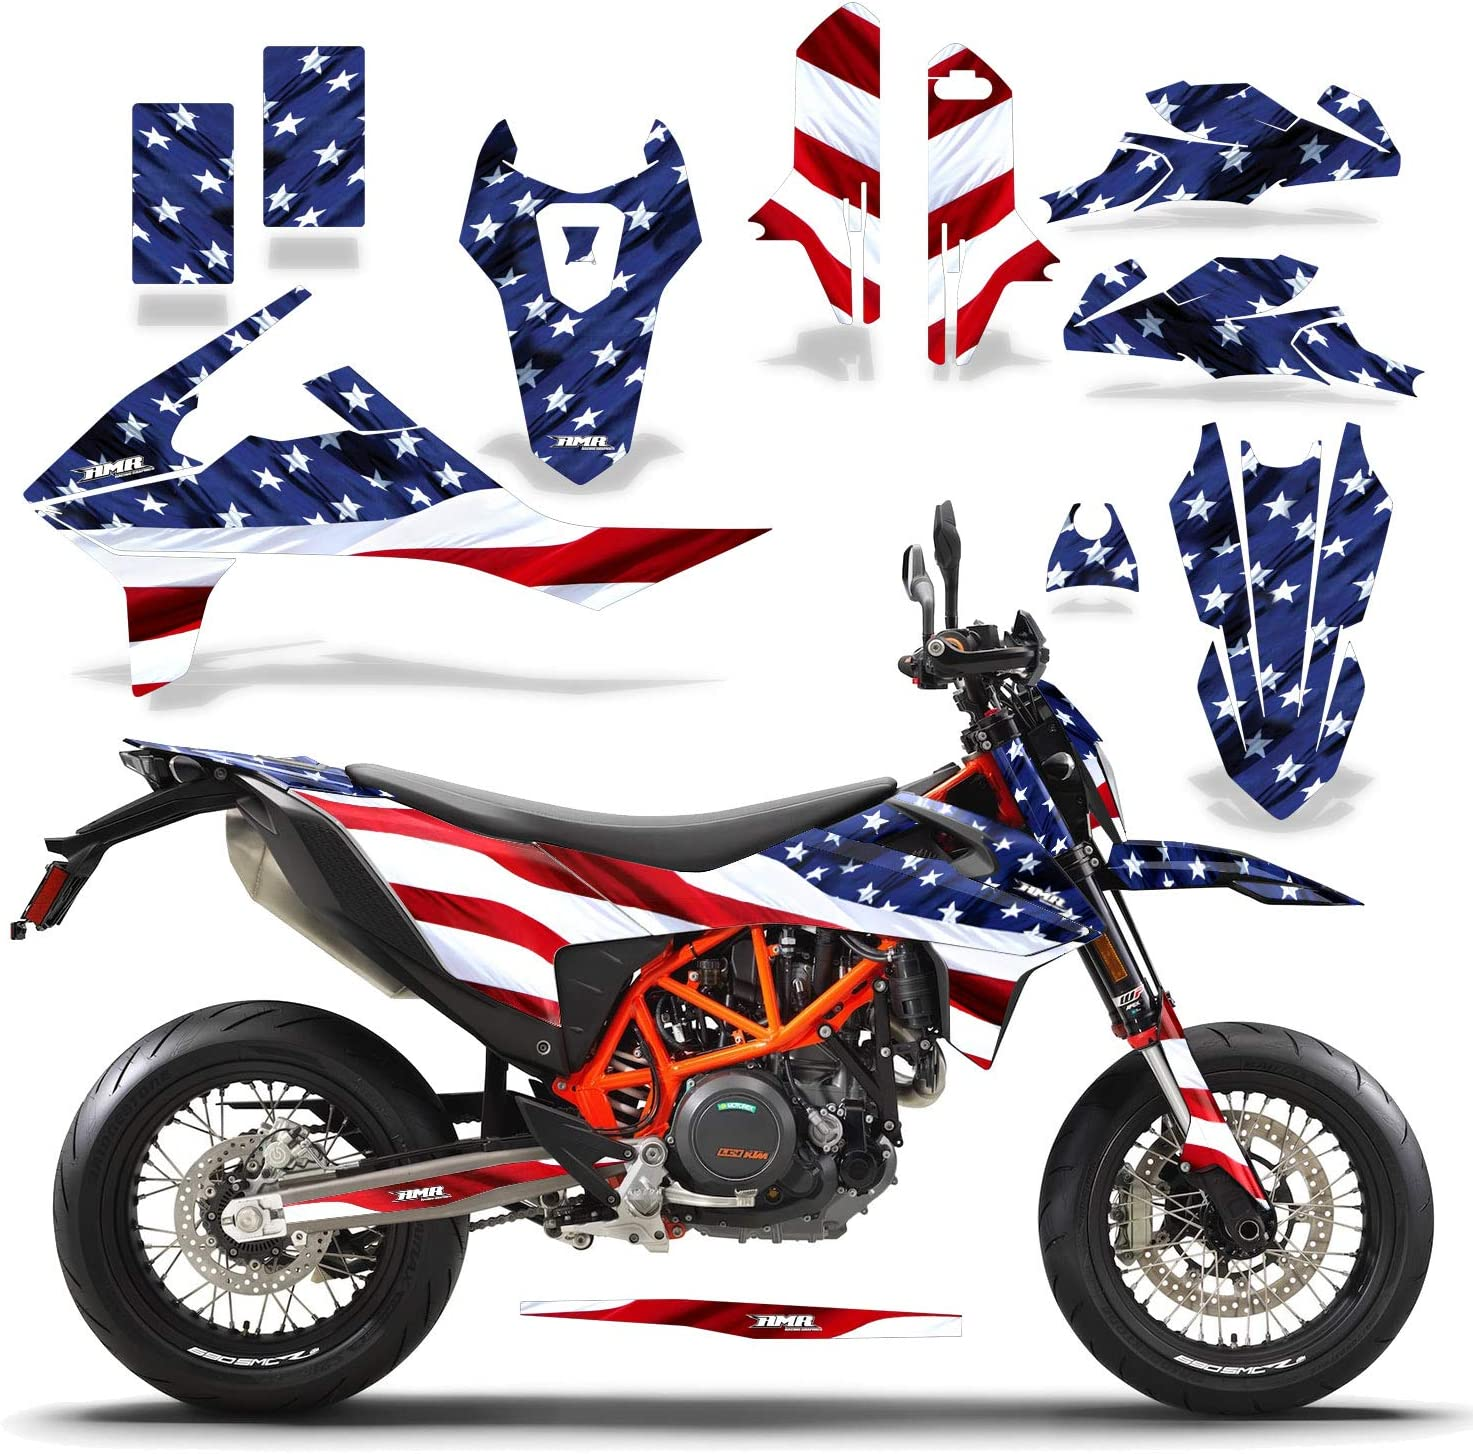 AMR Max 72% OFF Racing MX Dirt Bike Graphics Number kit Cheap super special price Decal Pl and Sticker